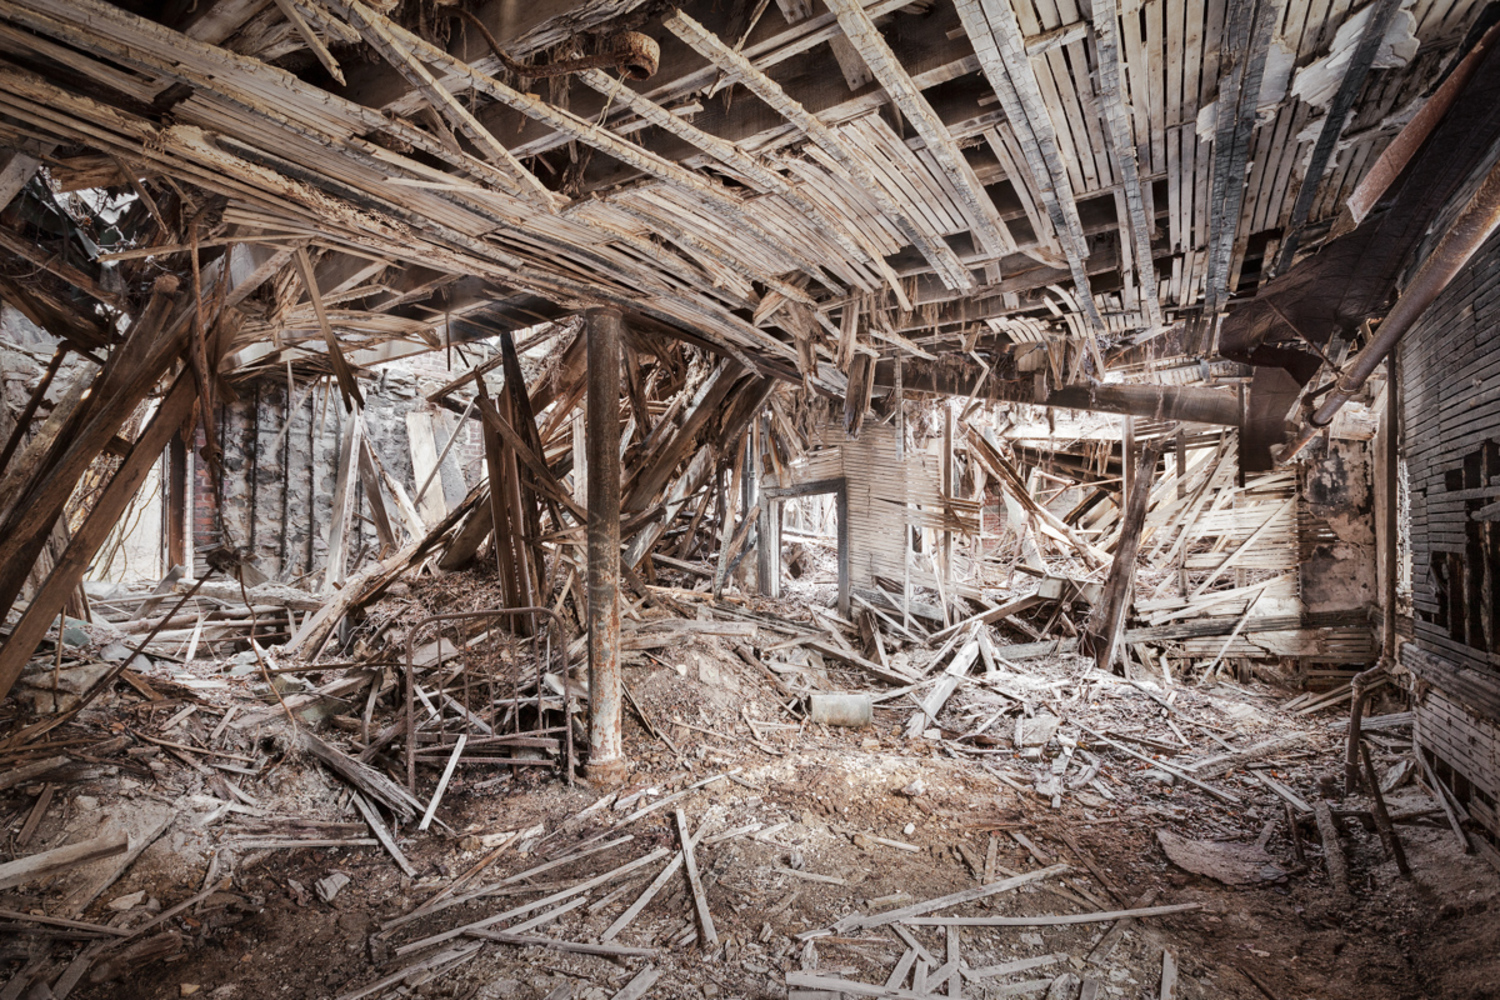 The Staten Island Farm Colony was constructed in the 19th century to house and rehabilitate the city's poor. This was the last room standing in a collapsed dormitory now slated for demolition.